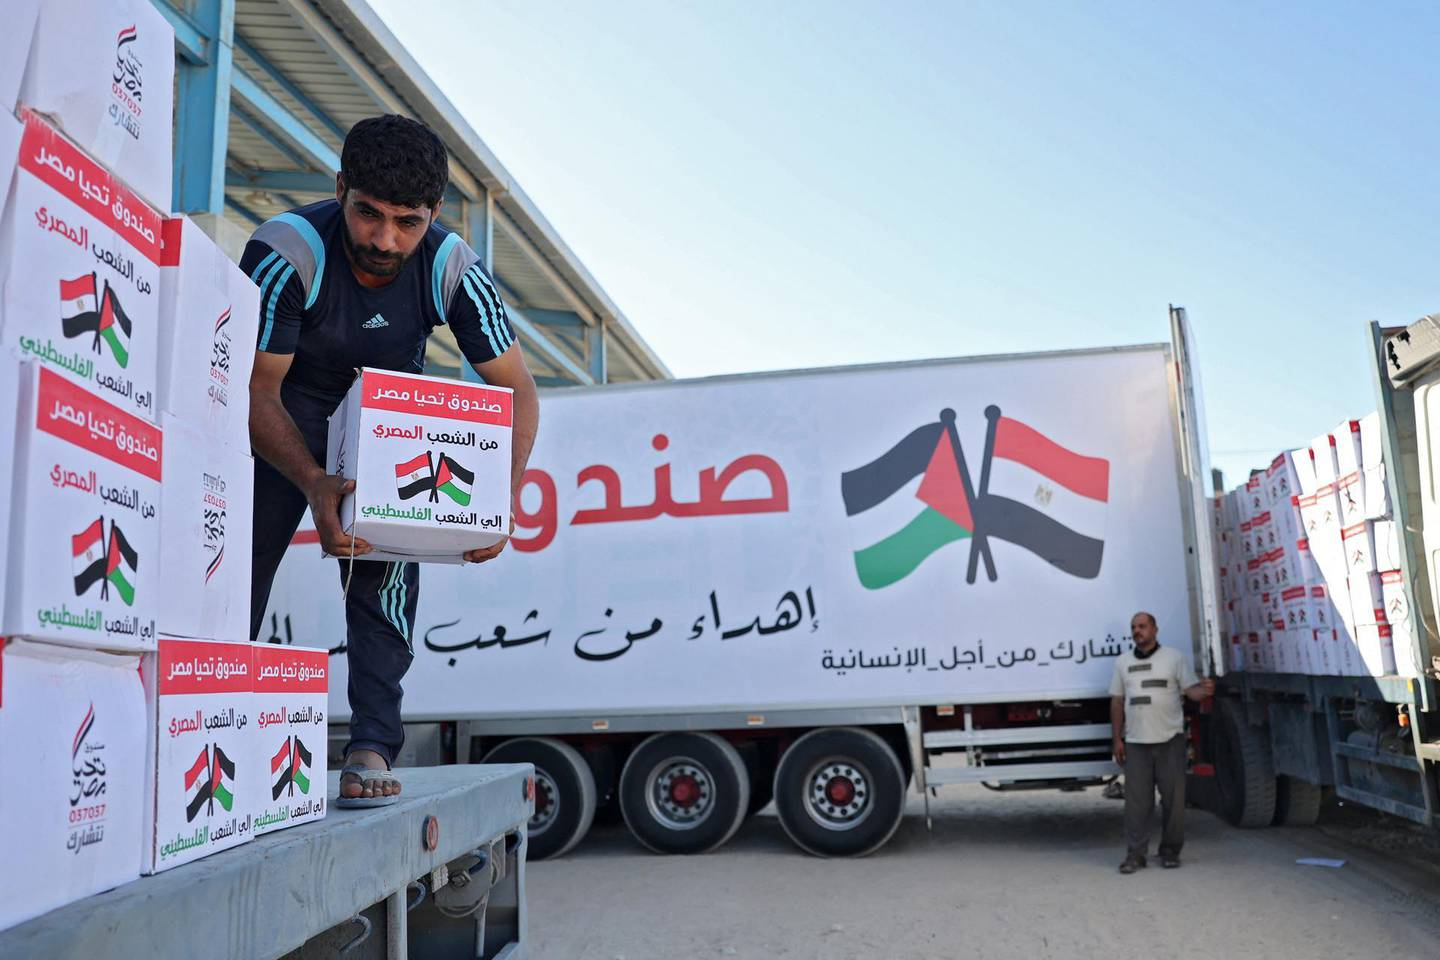 A Palestinian labourer empties boxes of aid from an Egyptian aid truck at the Rafah border crossing, which connects the Gaza Strip to Egypt, on May 23, 2021.  / AFP / SAID KHATIB